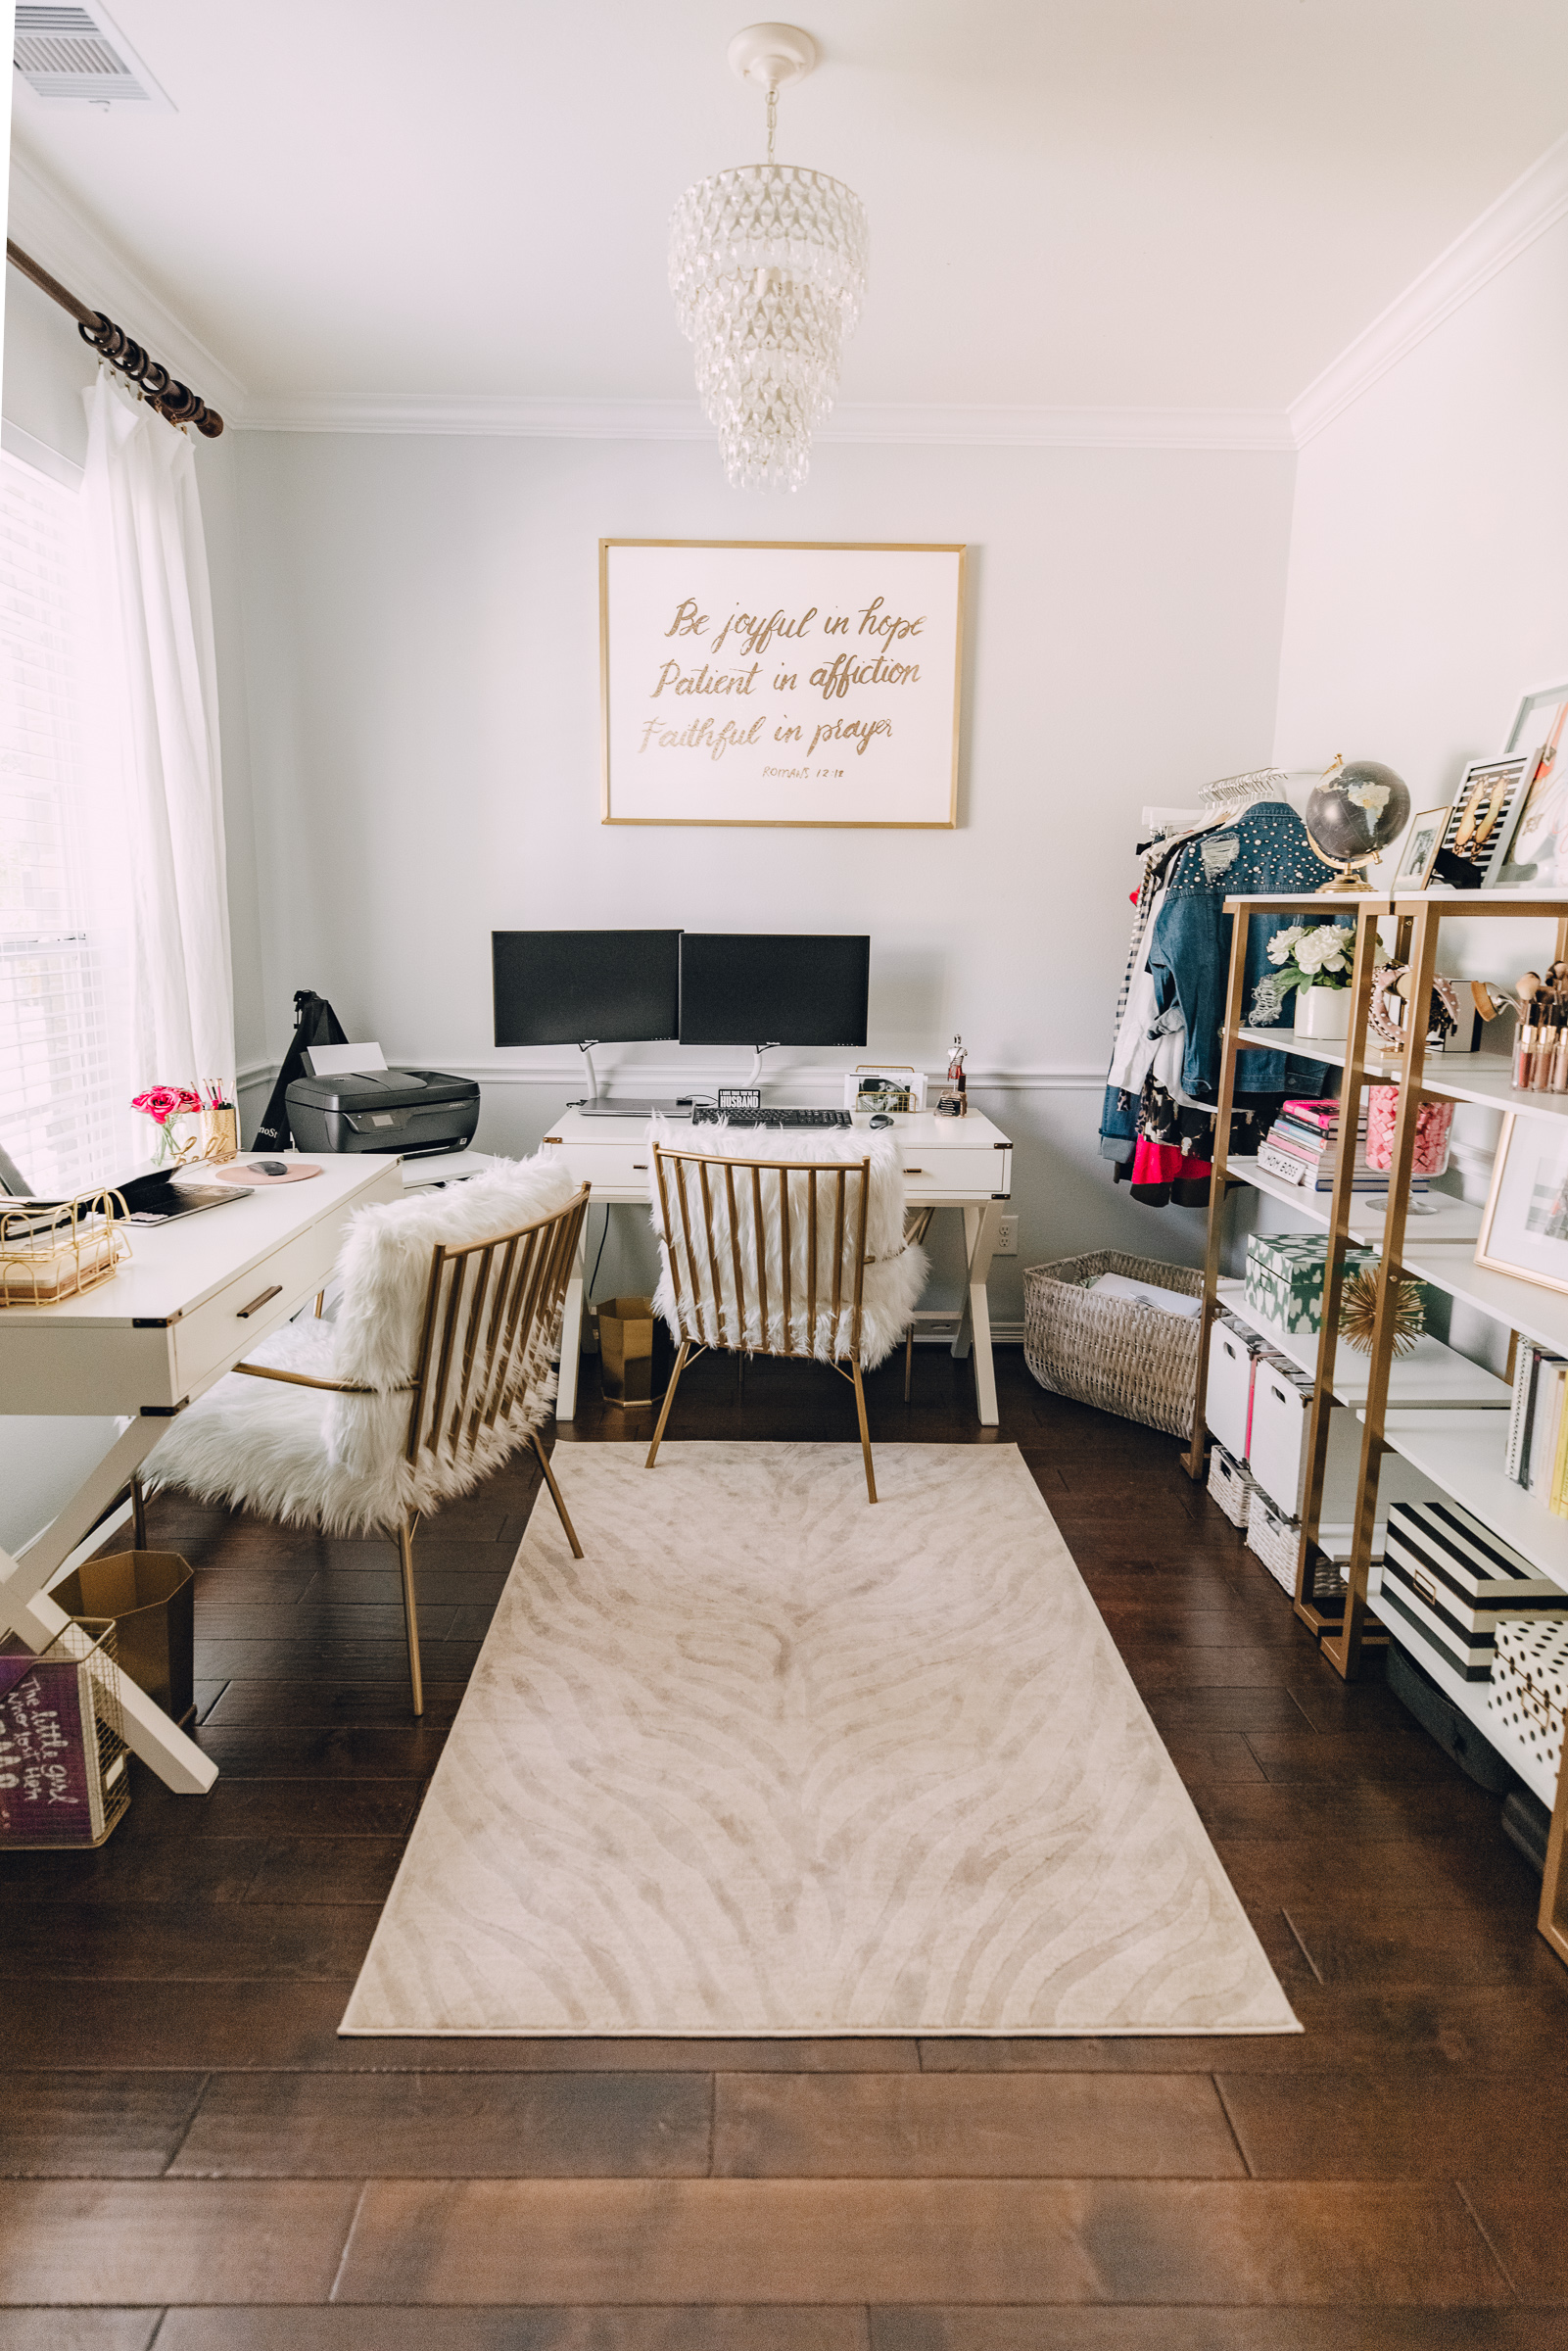 Houston blogger Elly Brown shares her Chic shared office decor with CosmoLiving